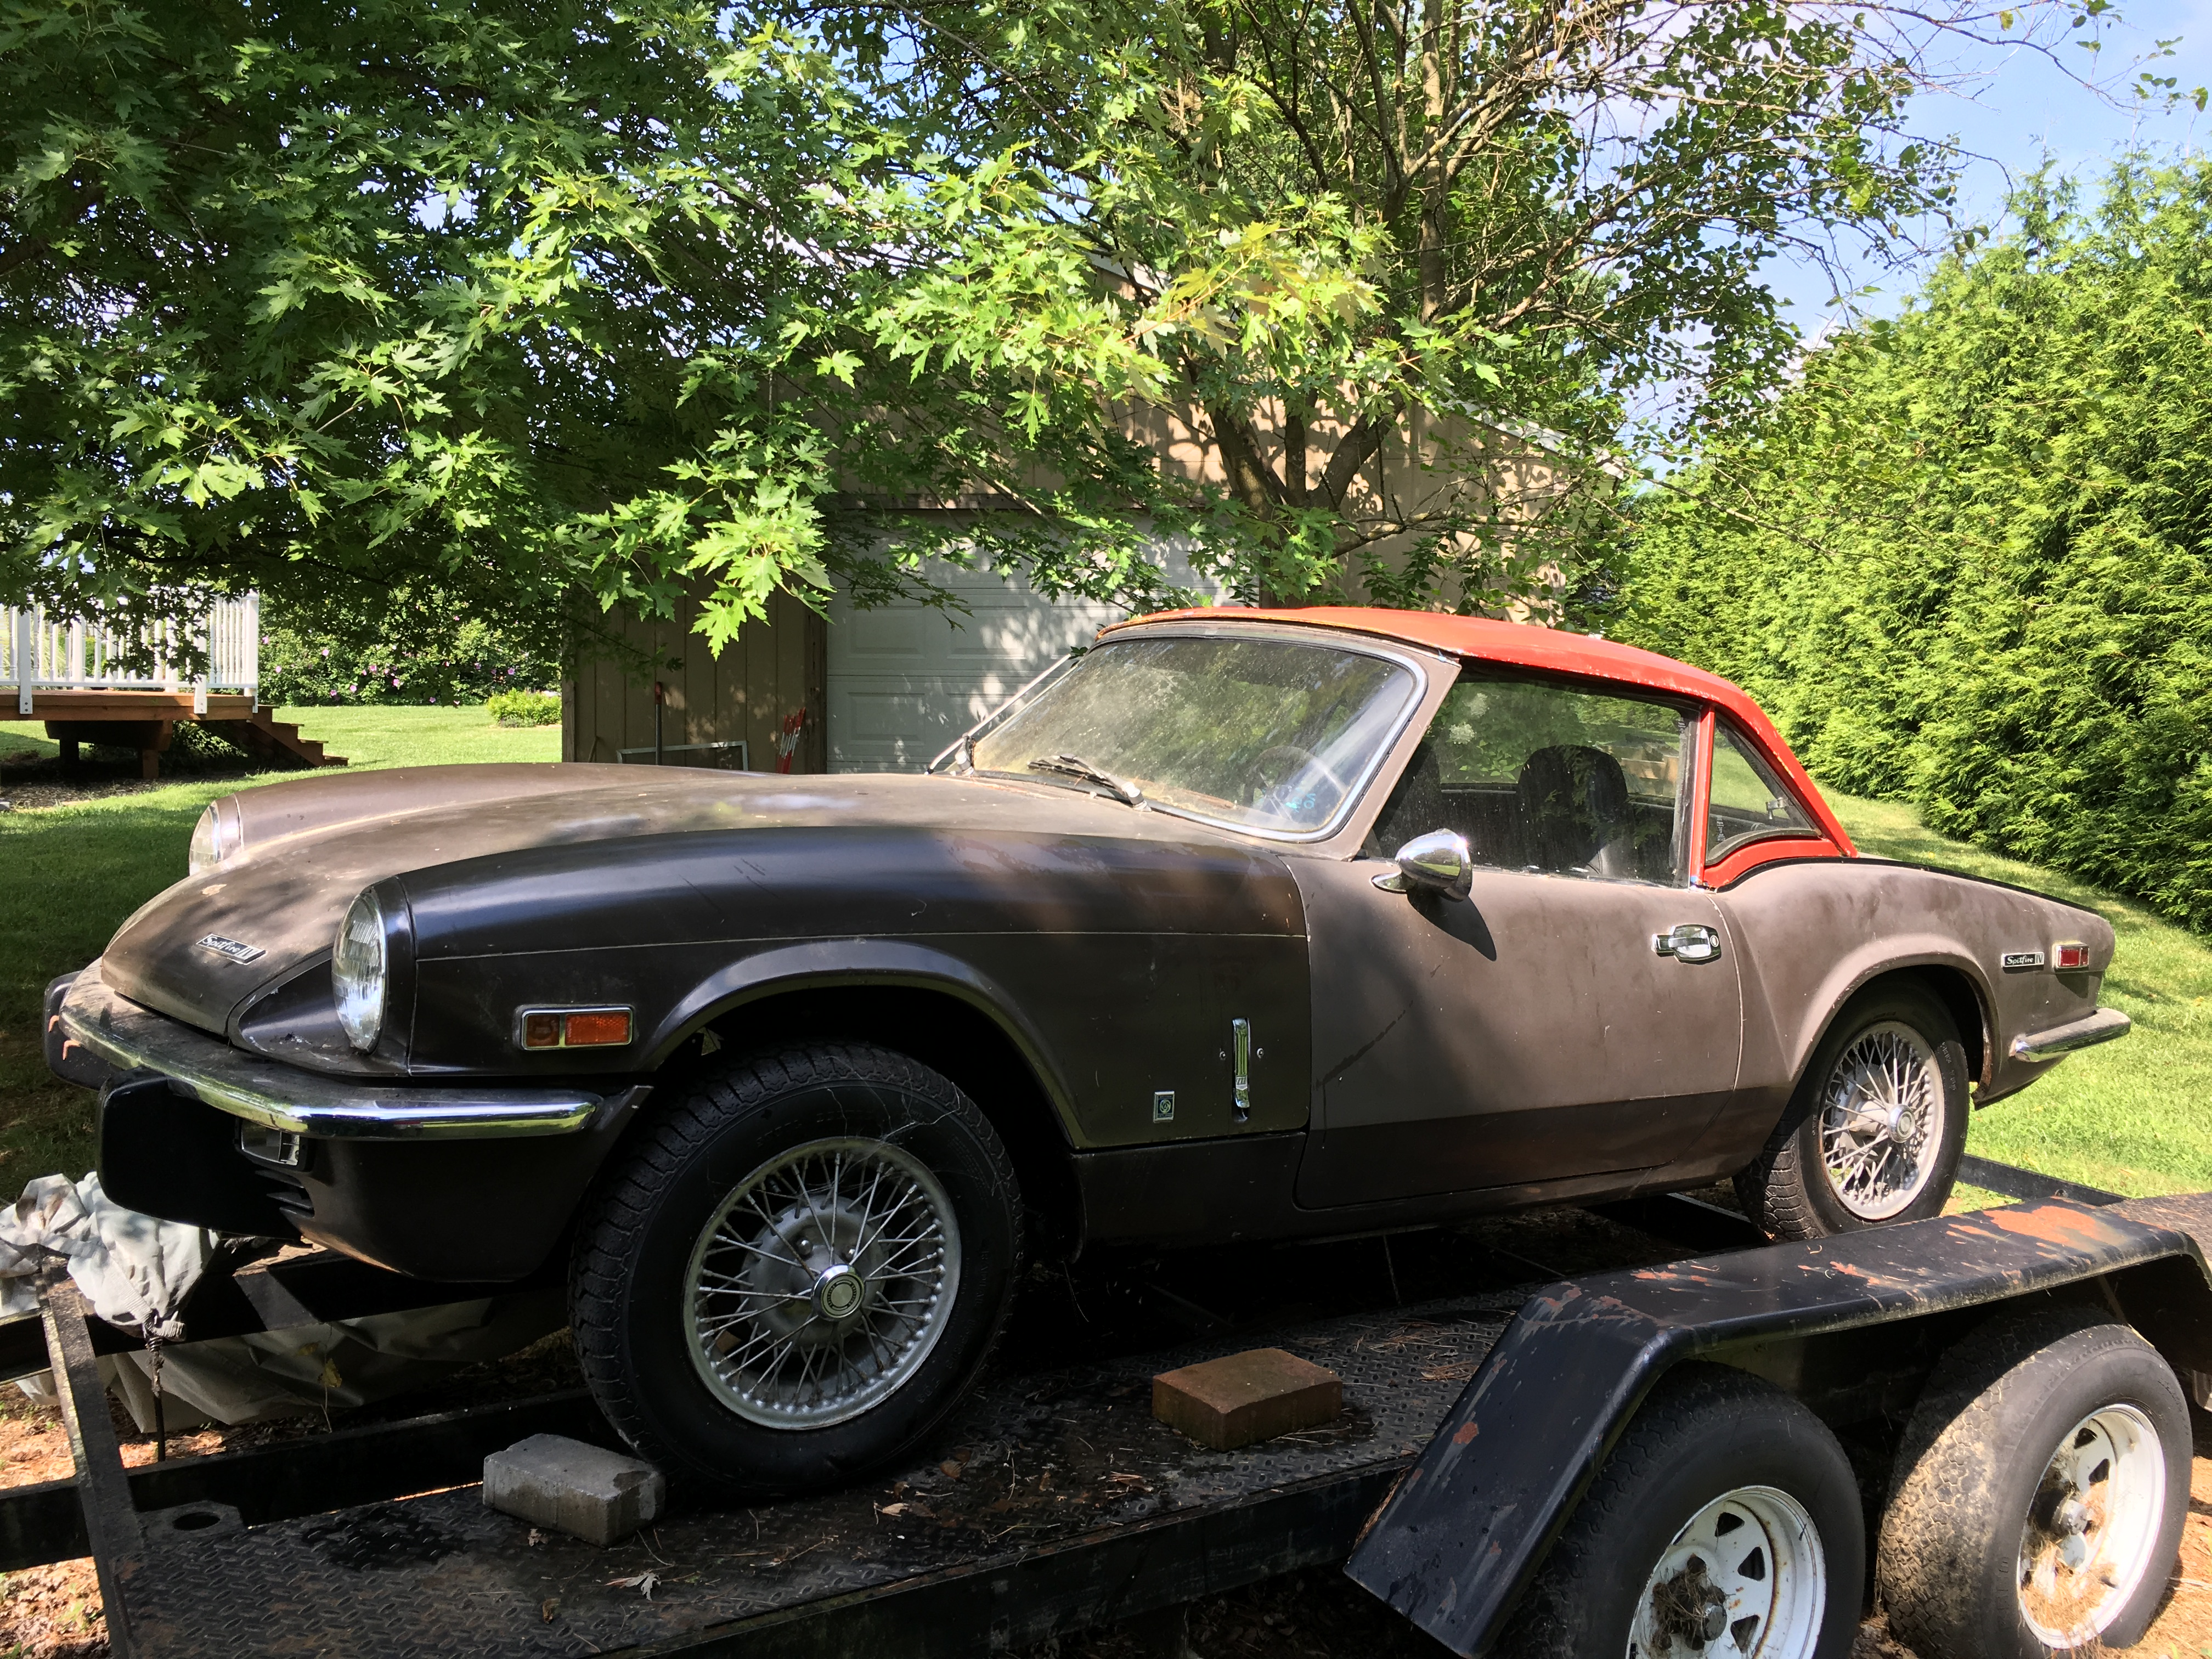 Rat Rod - 1972 MK4 Triumph Spitfire project| Builds and Project ...